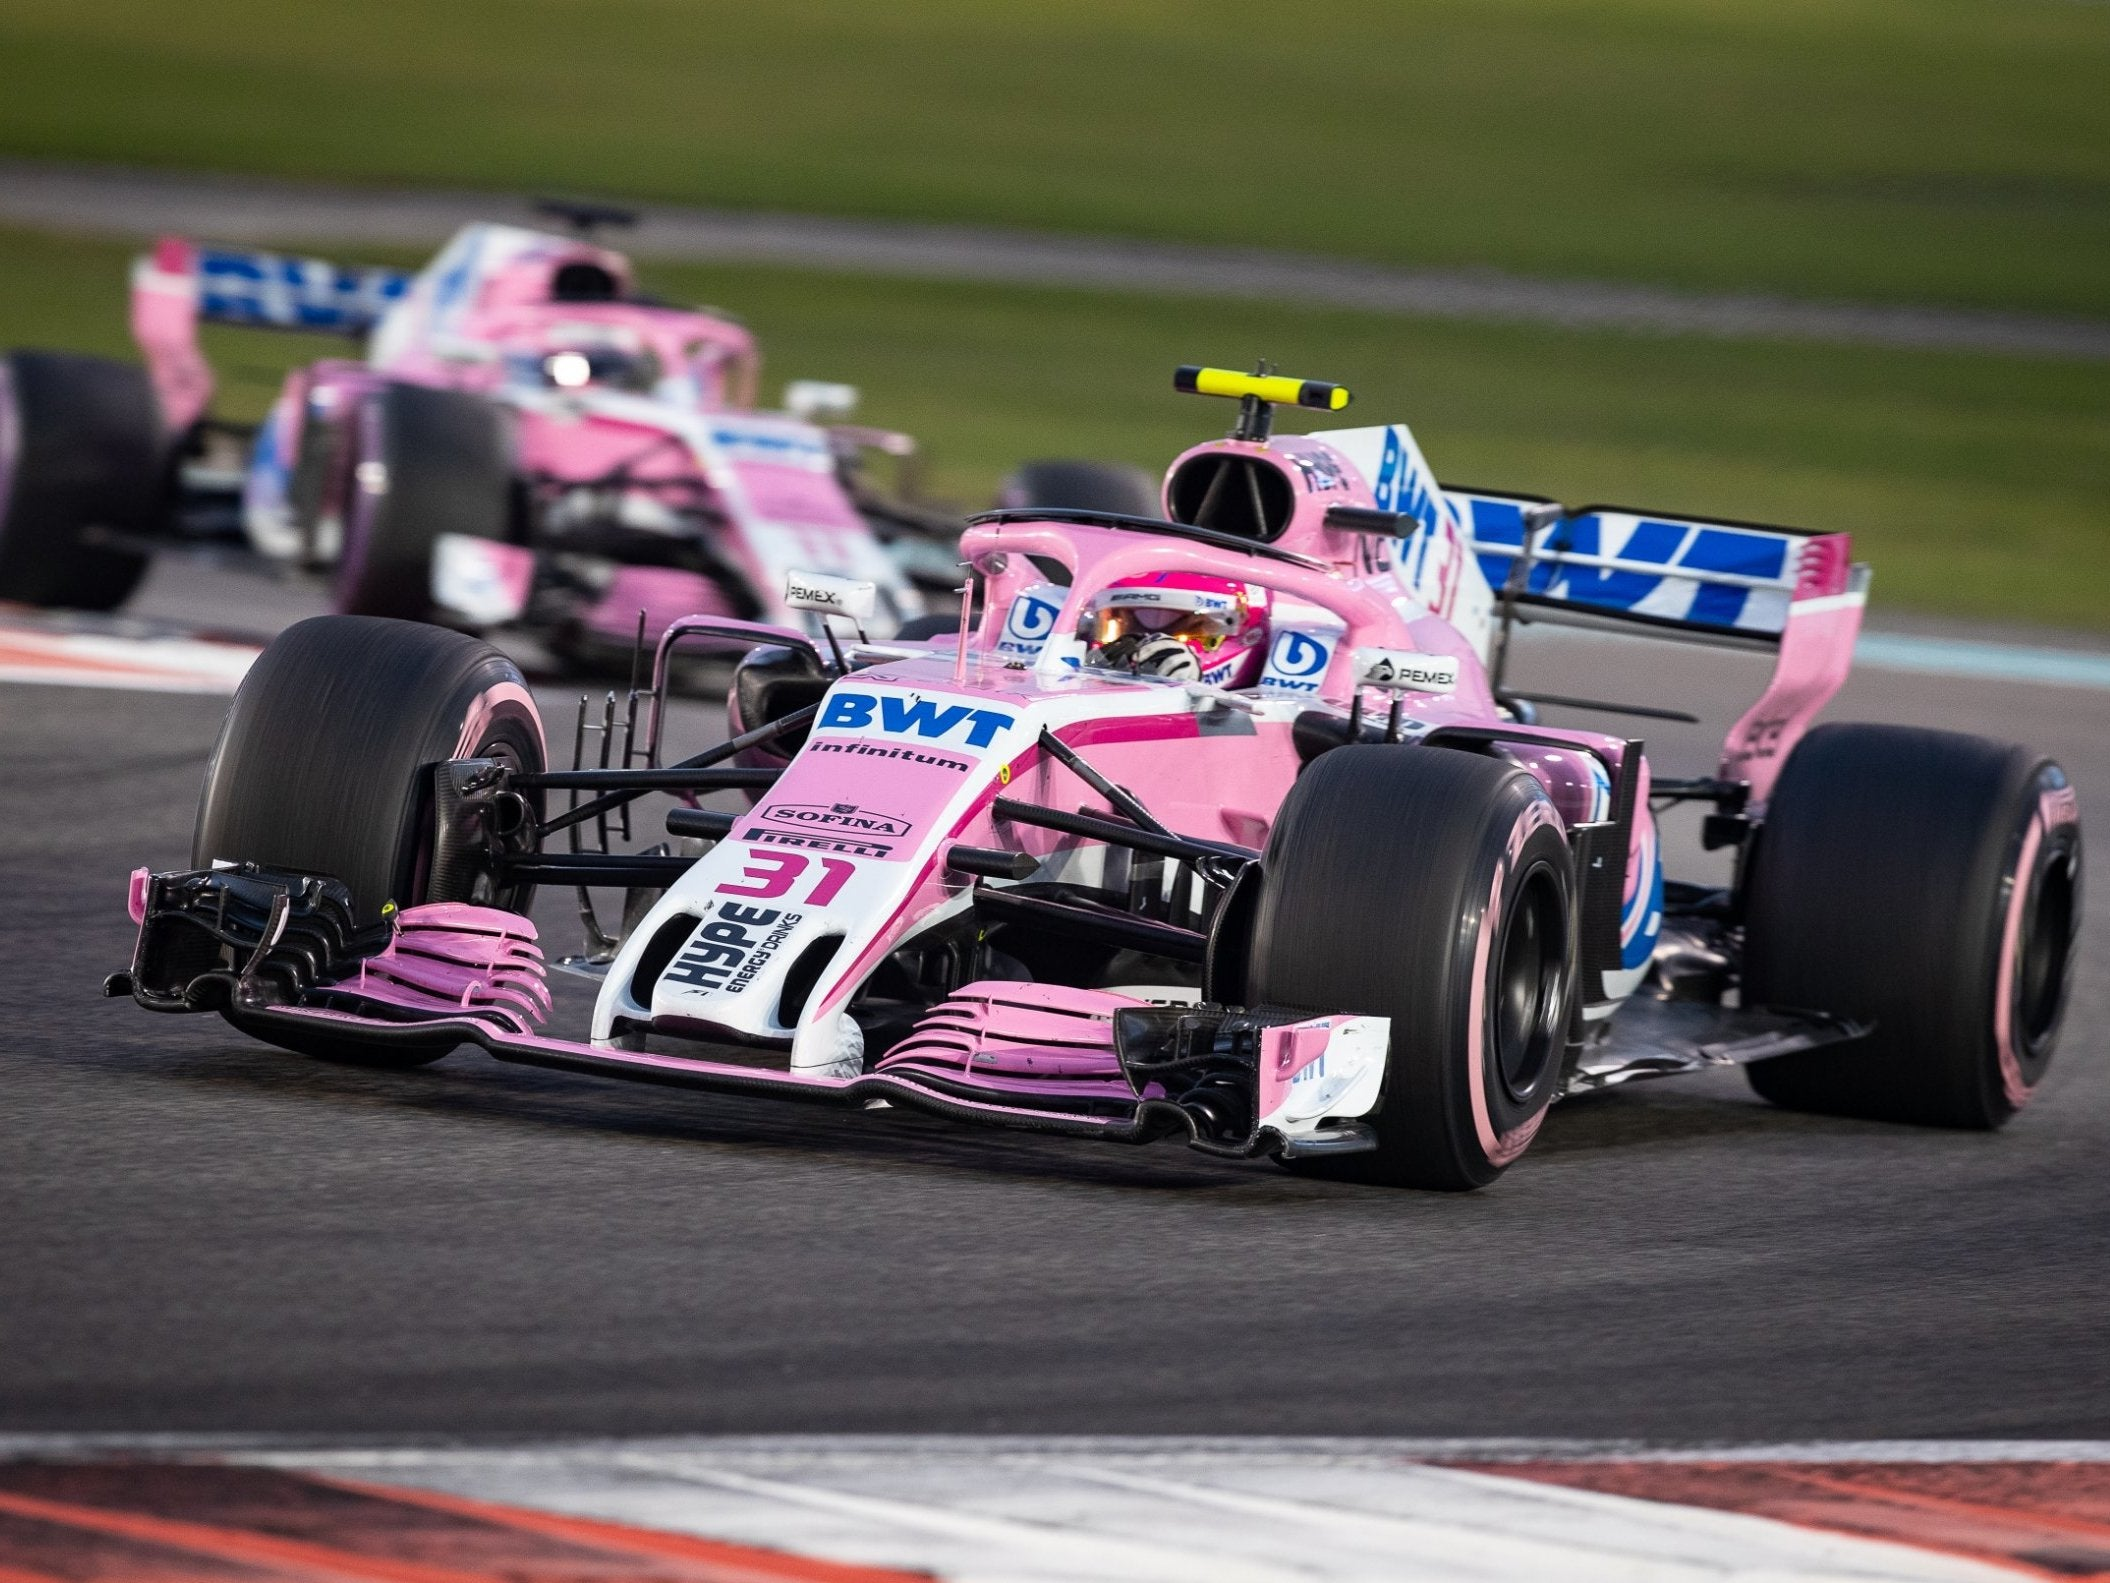 Force India Name To Disappear From 2019 Grid After Racing Point F1 Rebrand As Driver Numbers Unveiled The Independent The Independent